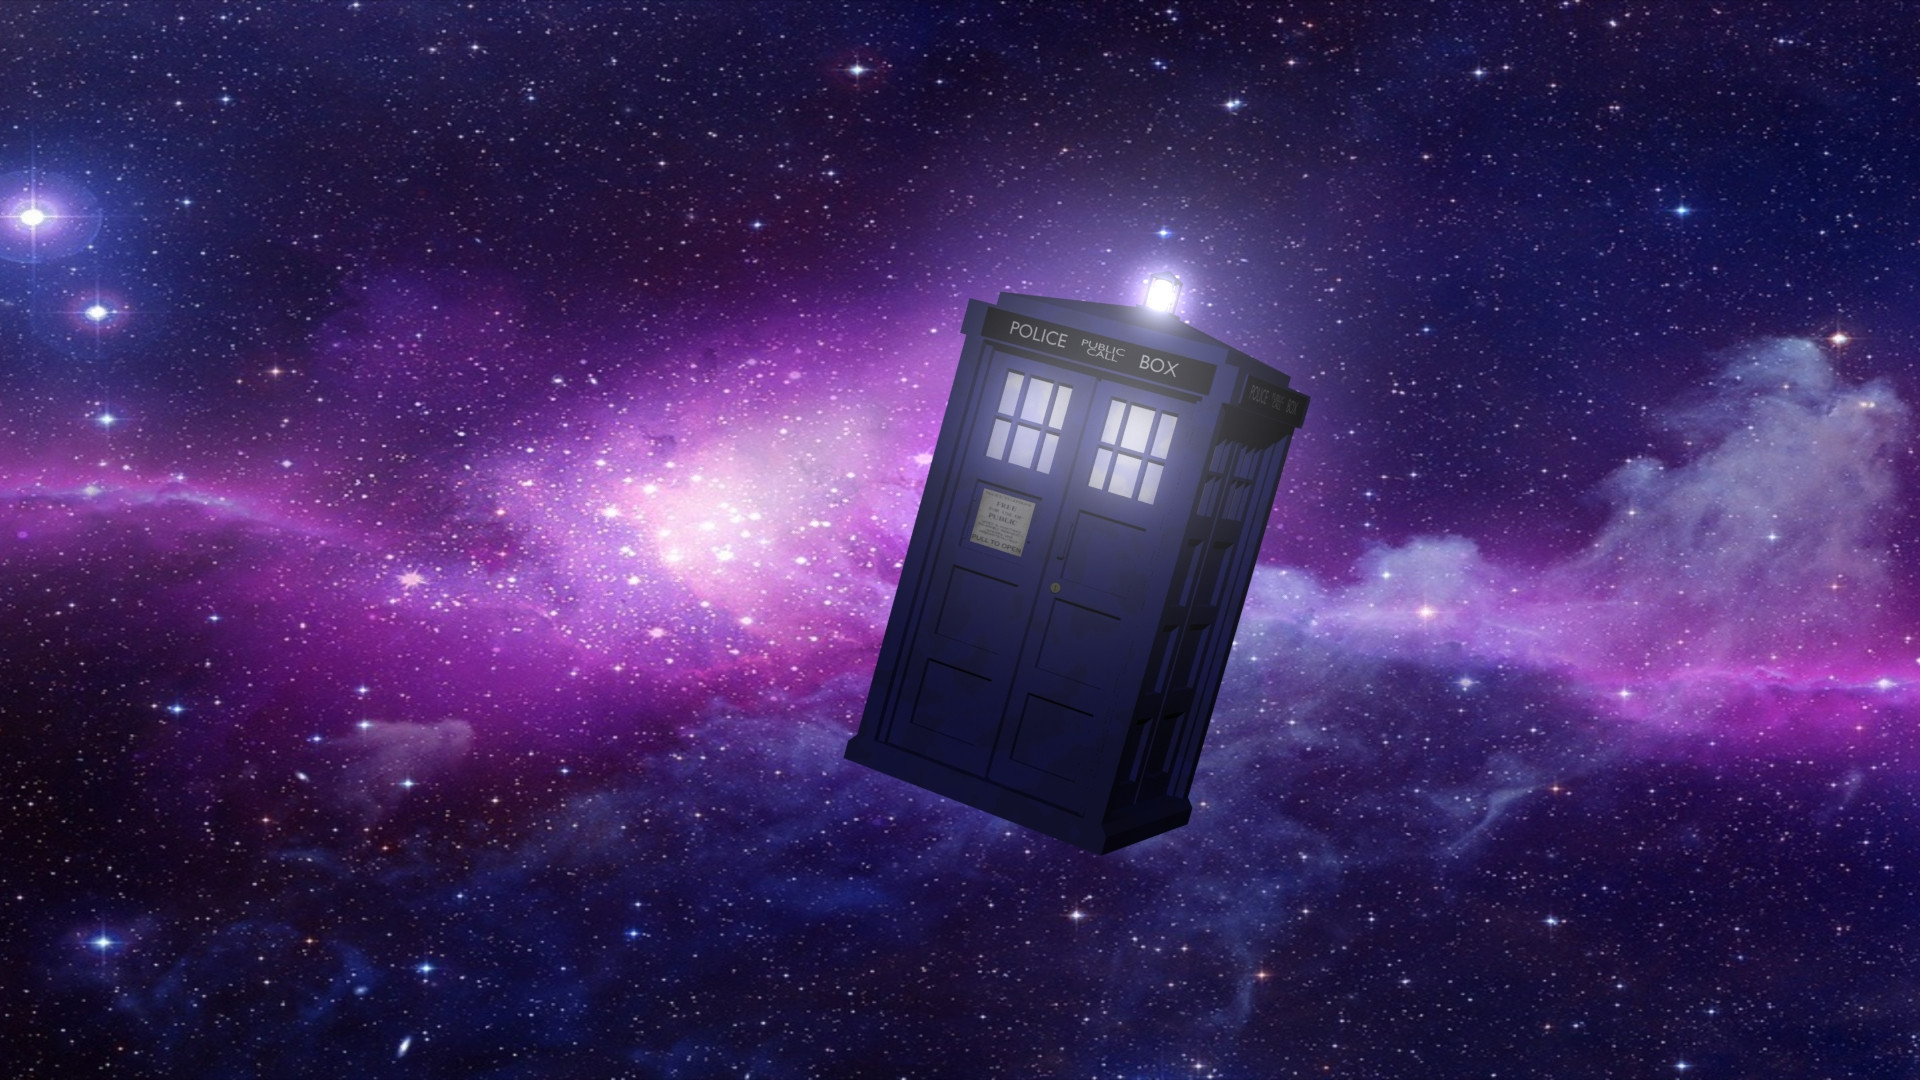 Doctor Who Live Wallpapers 61+ images